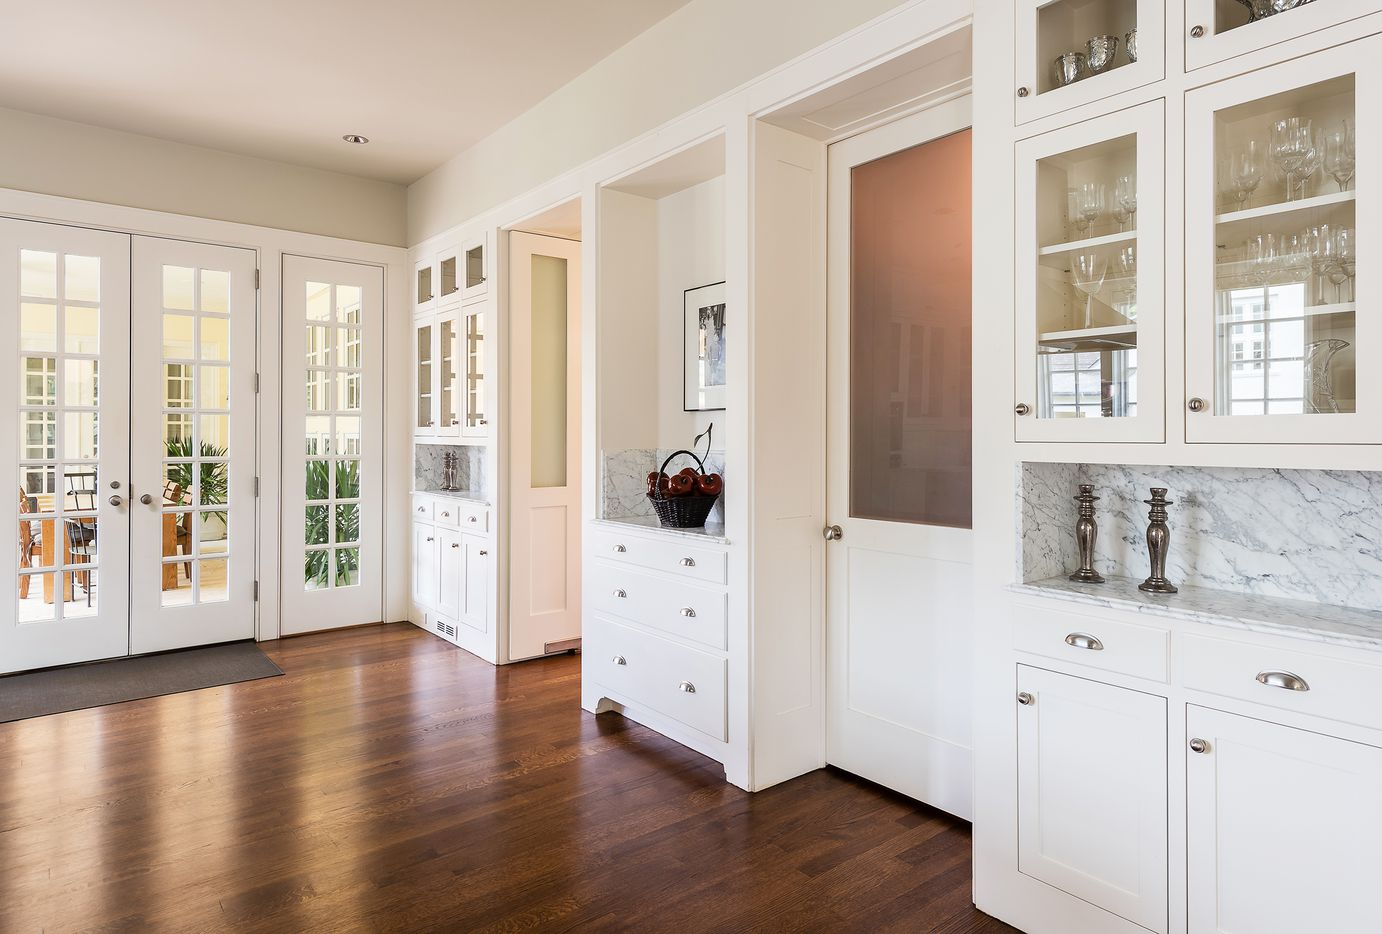 The home was inspired by English country homes of the 1920s.